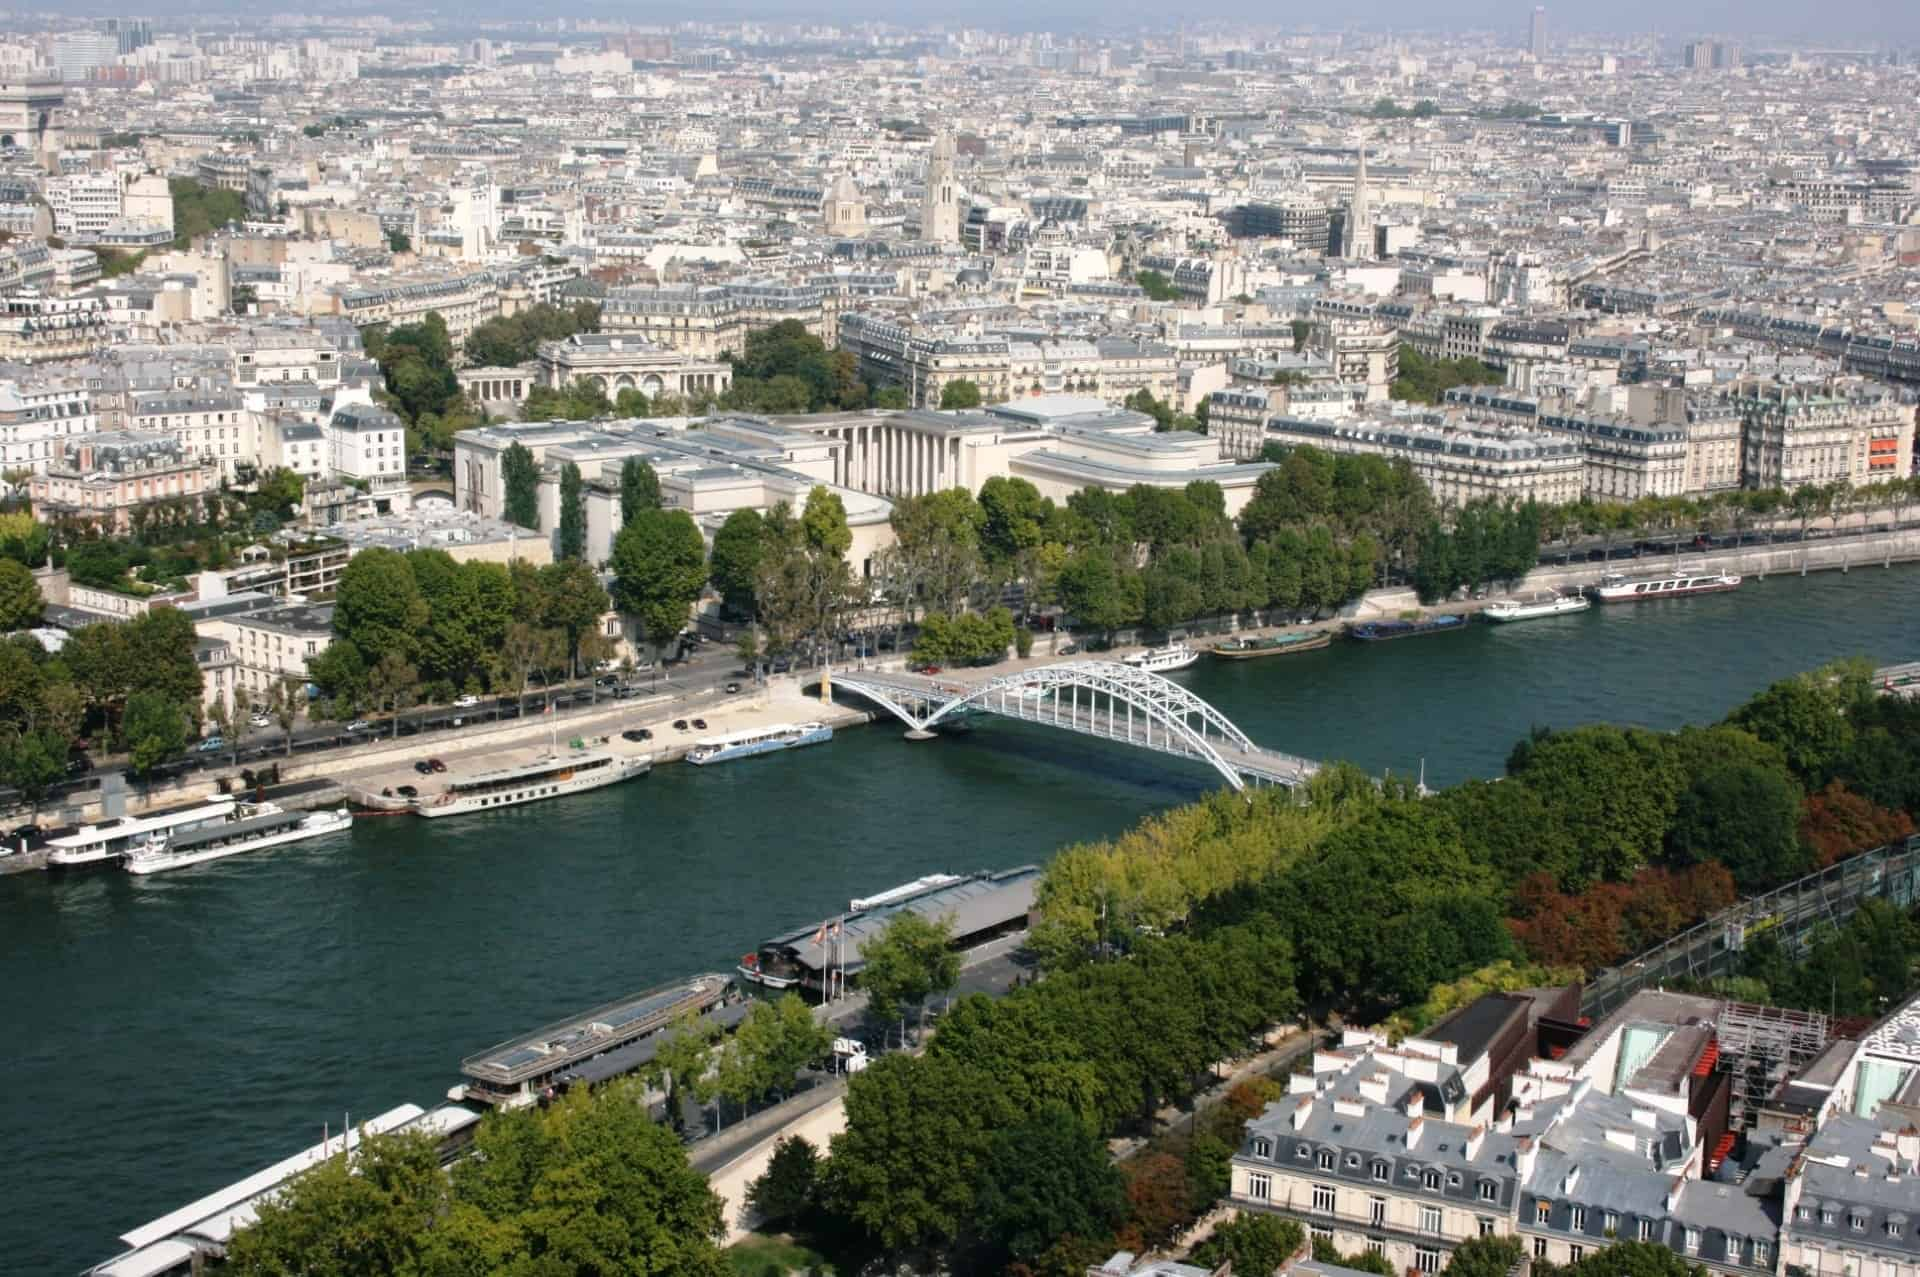 An aerial view of the Seine River.